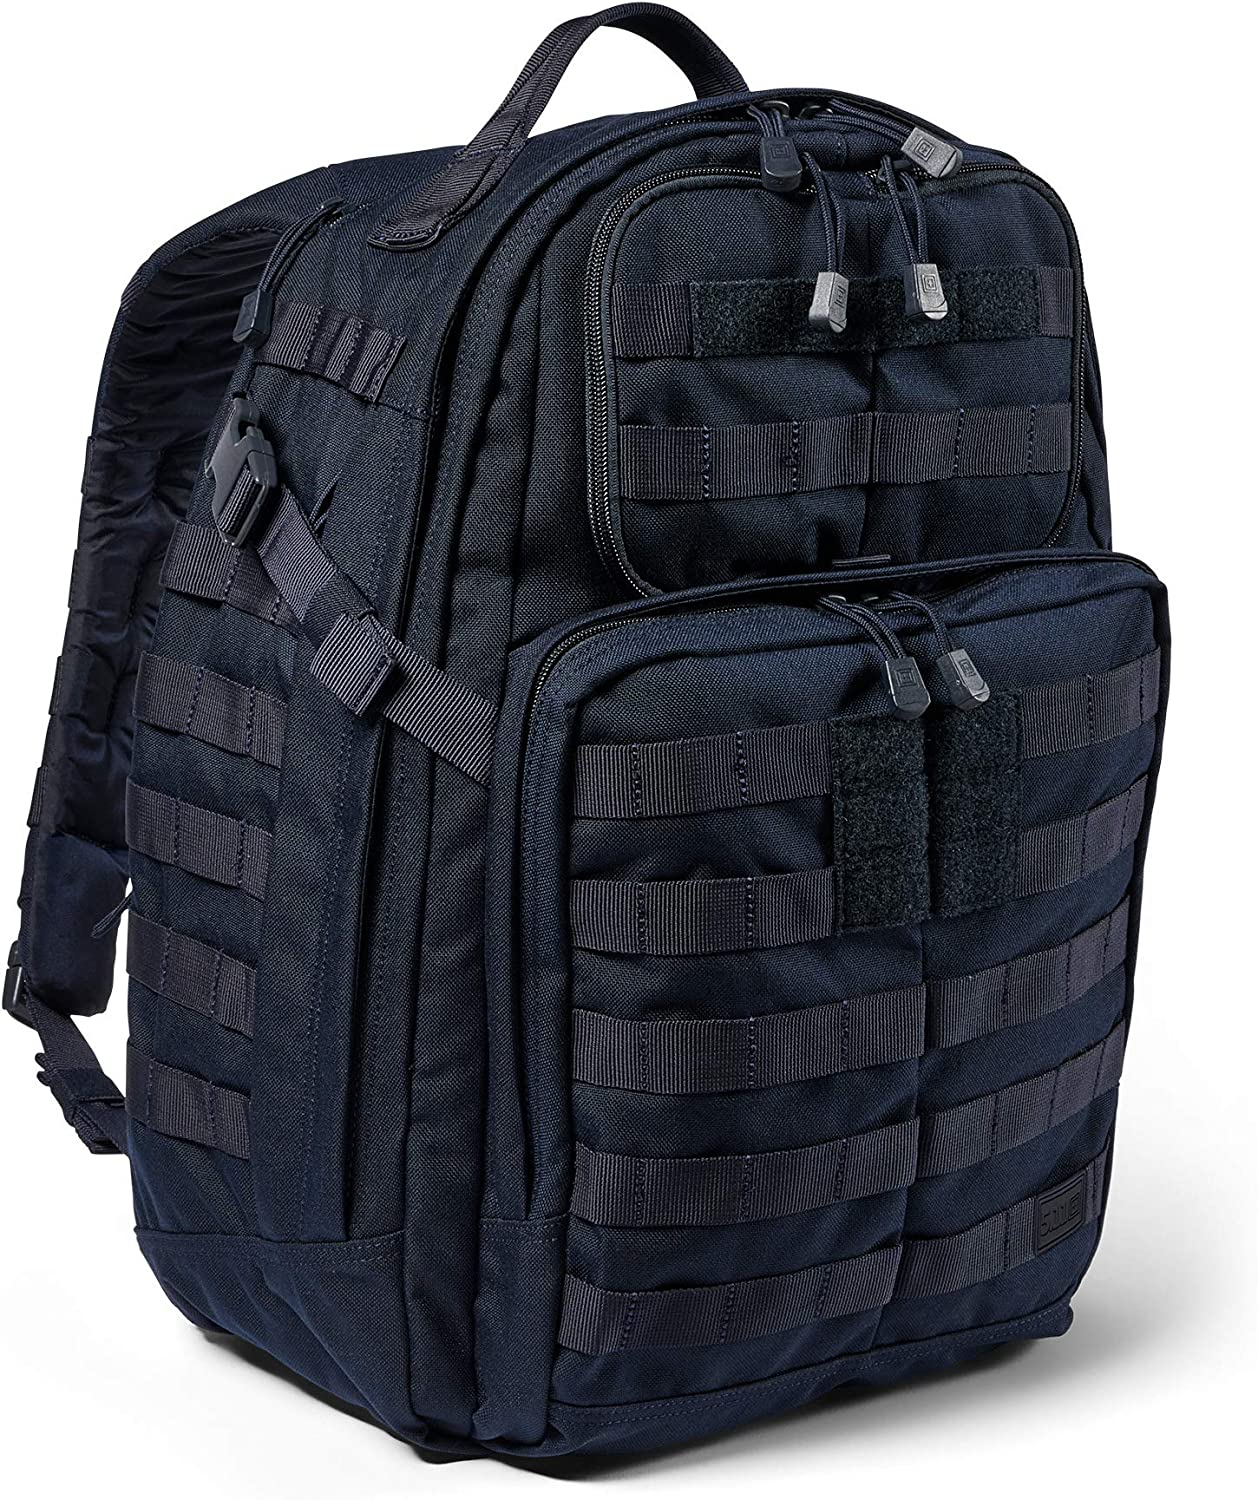 5.11 Tactical Backpack 'Rush 24 2.0 'Military Molle Pack, CCW and Laptop Compartment, 37 Liter, Medium, Style 56563 'Dark Navy